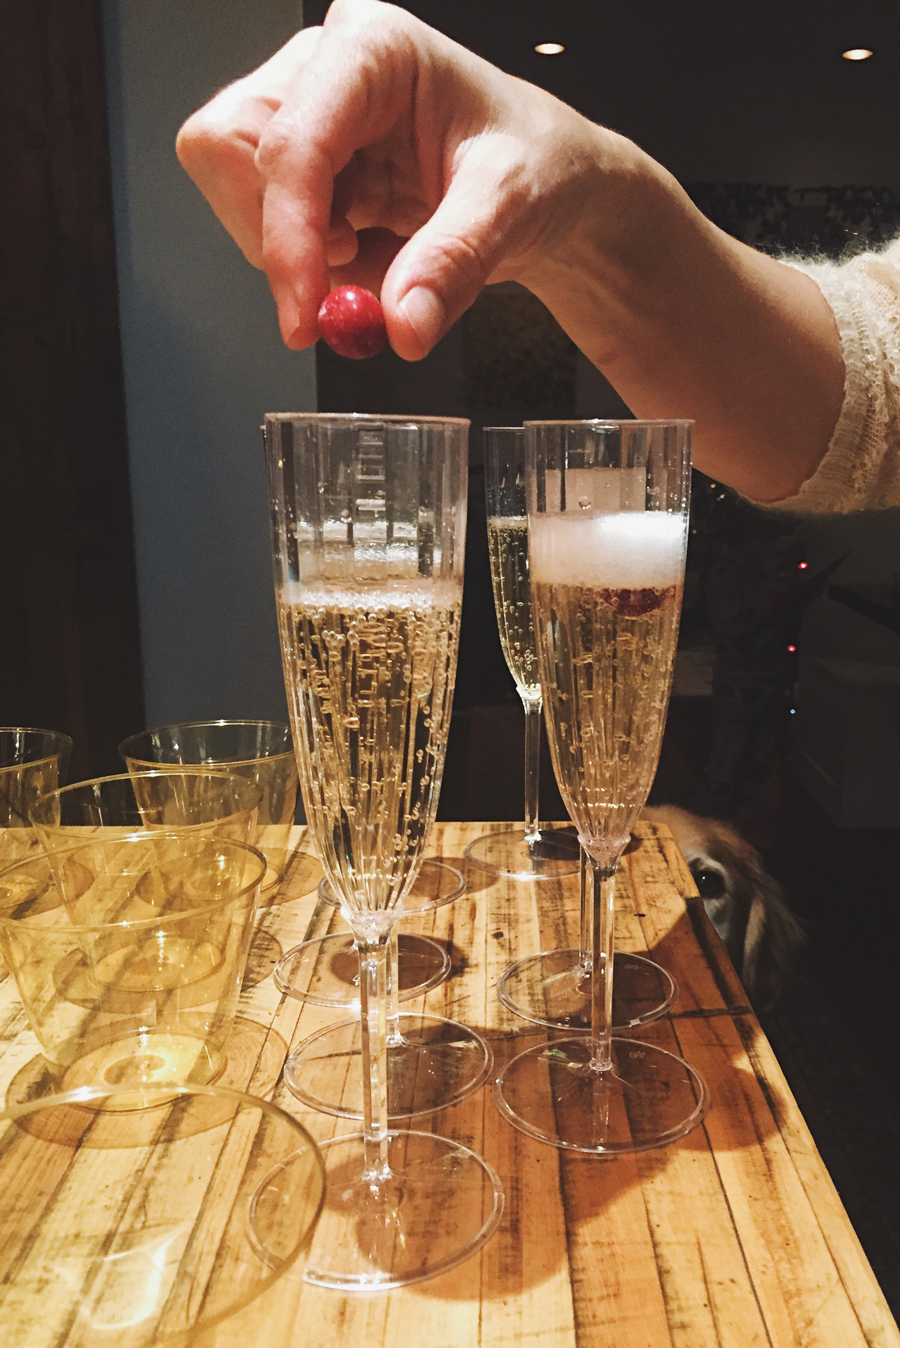 Preparing champagne flutes for New Years Eve.